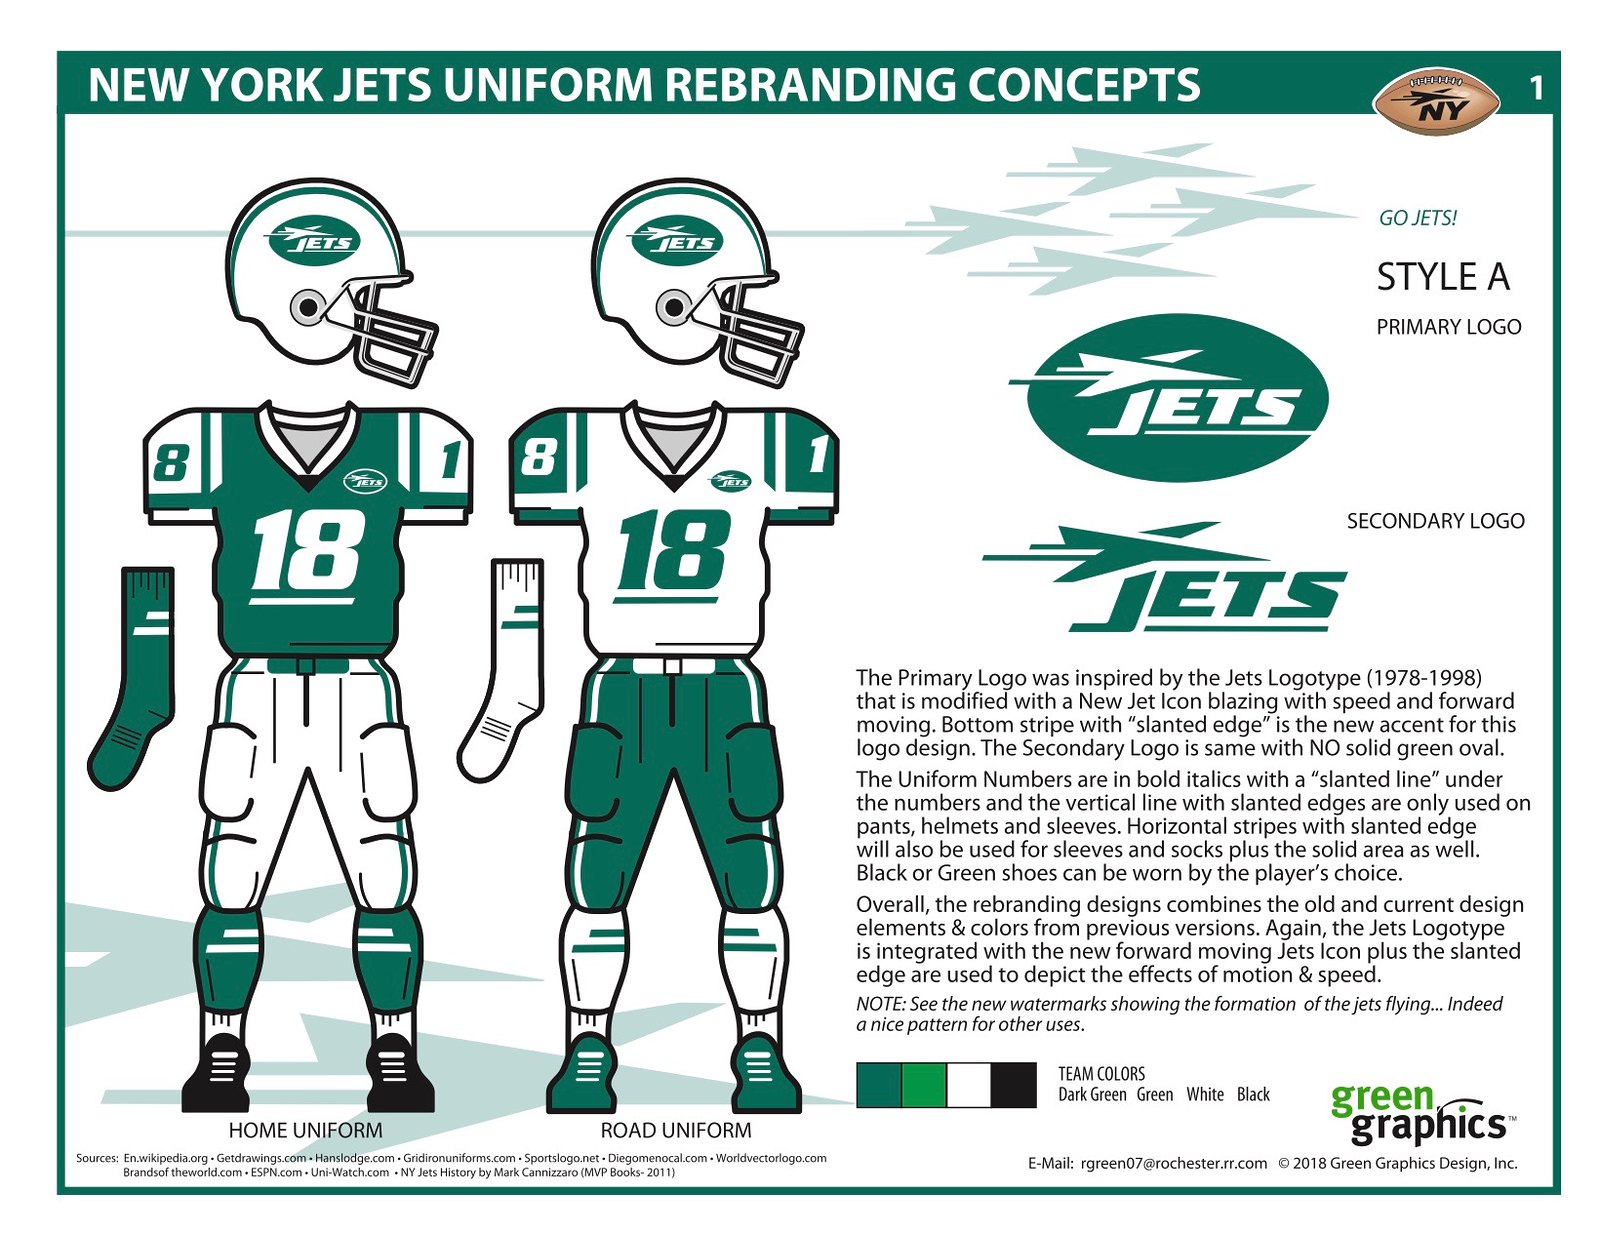 New Uni Watch delivers the winning entries for the New York Jets